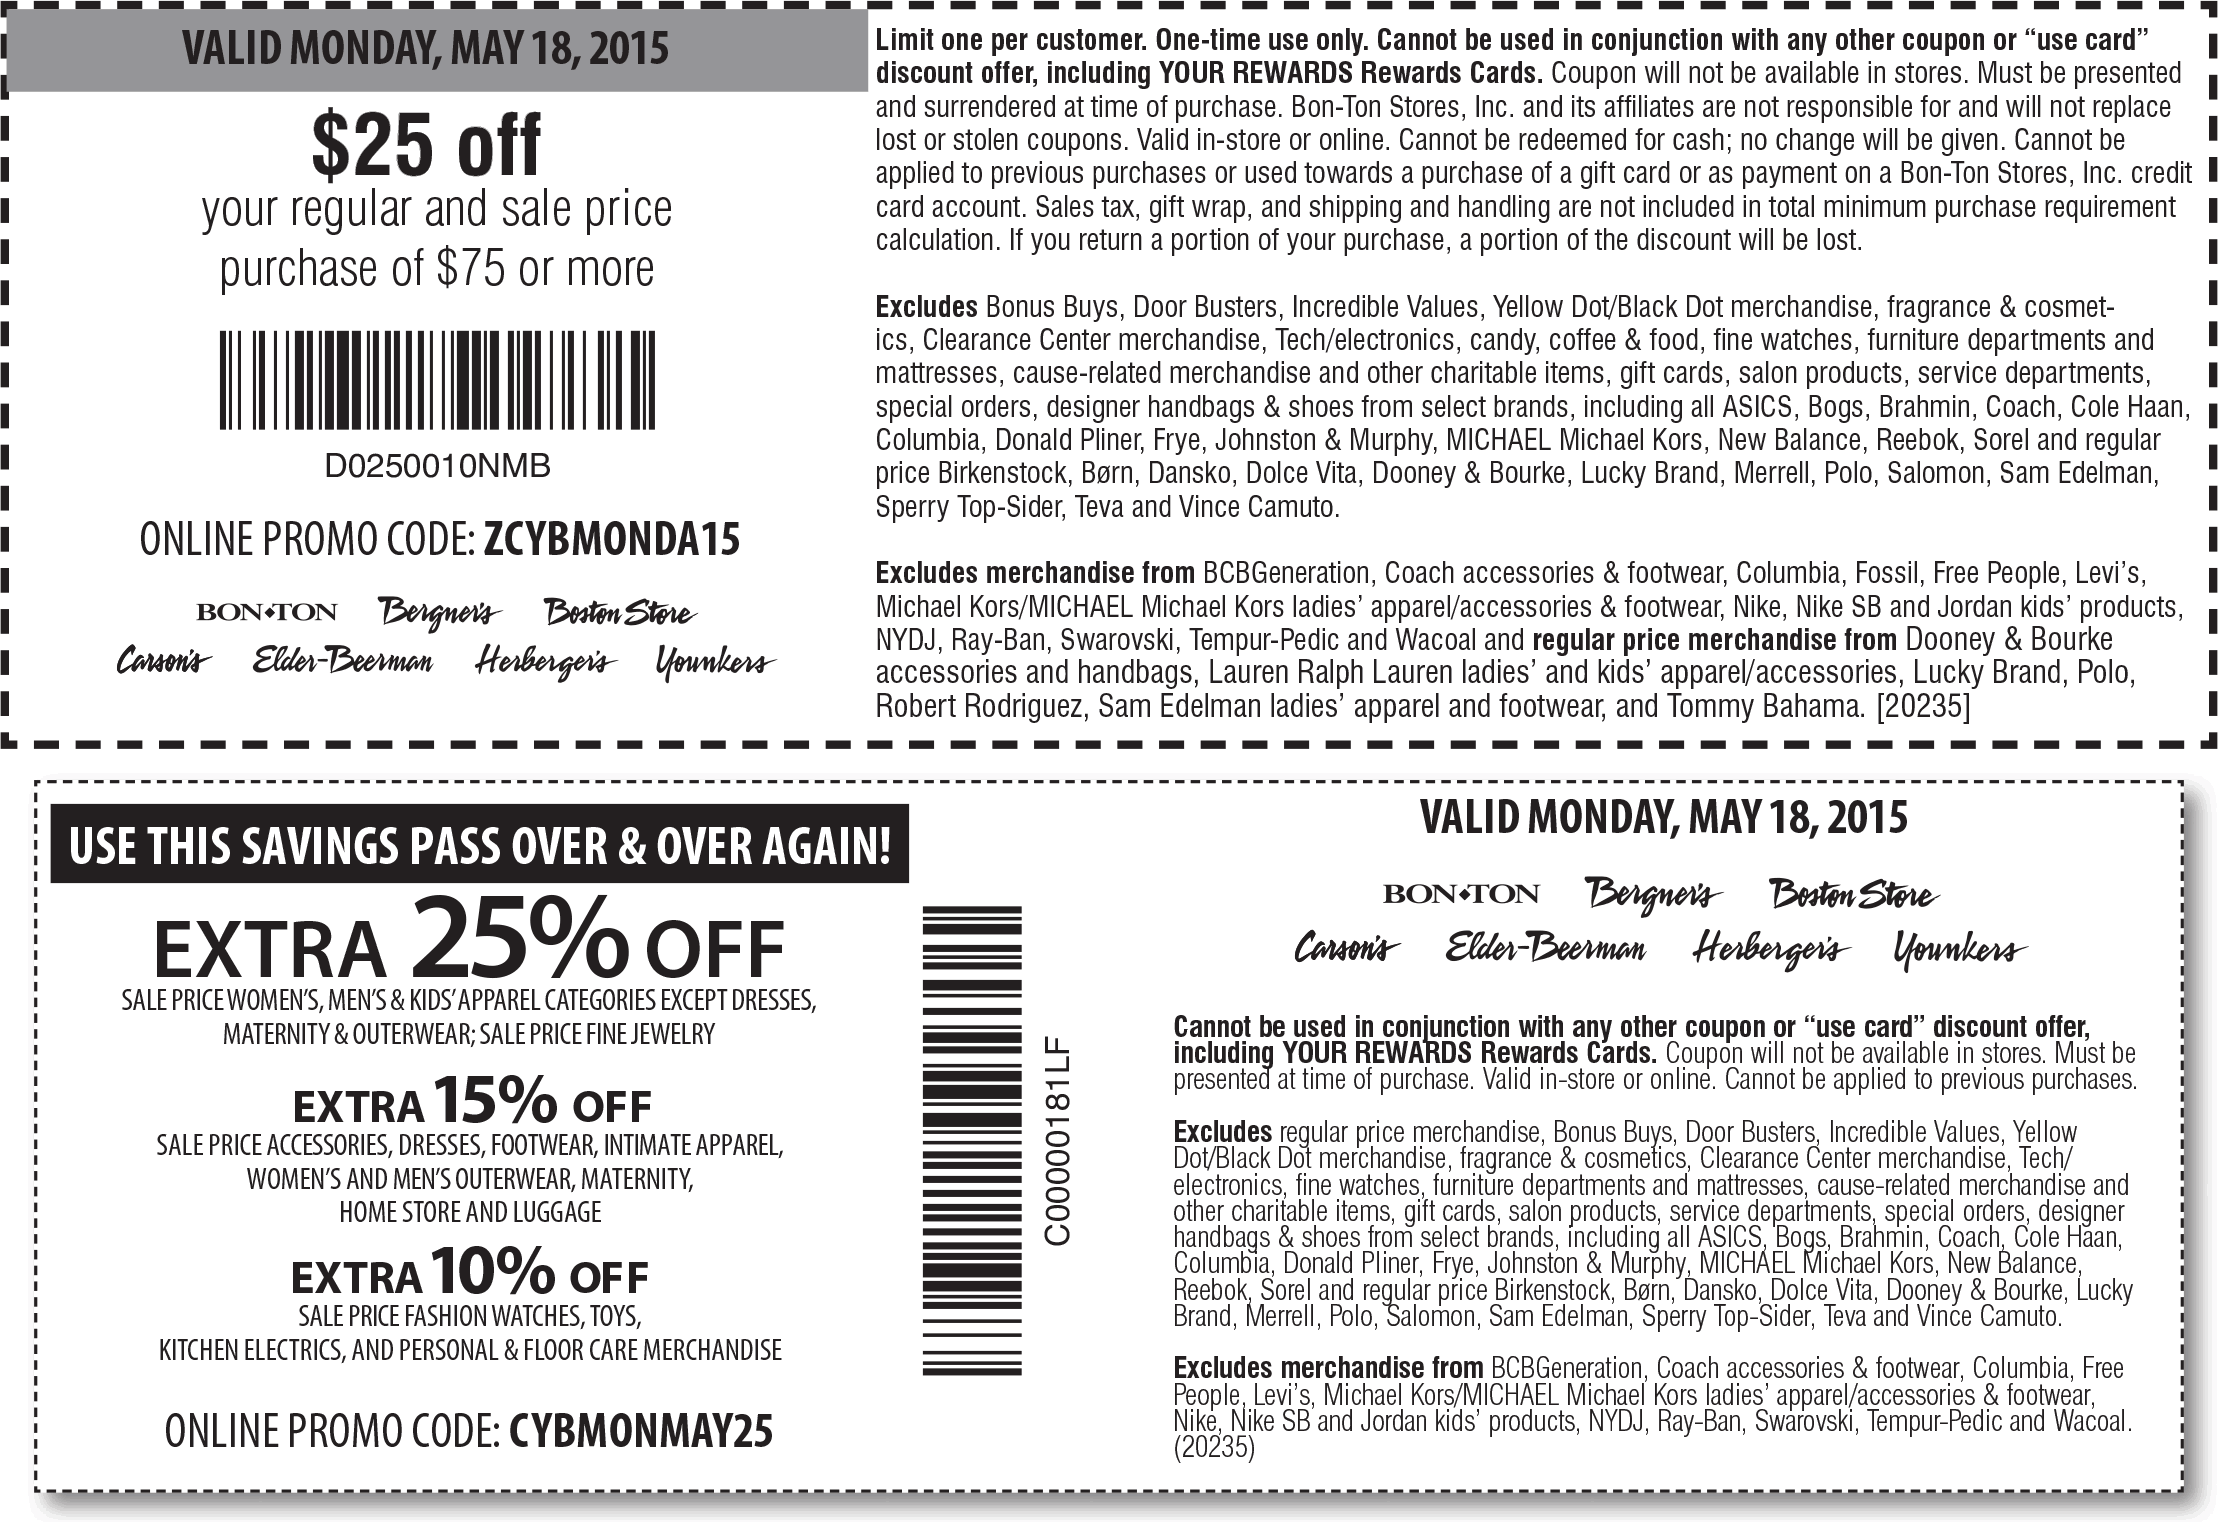 Bon Ton Coupon April 2017 $25 off $75 & more today at Carsons, Bon Ton & sister stores, or online via promo code  ZCYBMONDA15